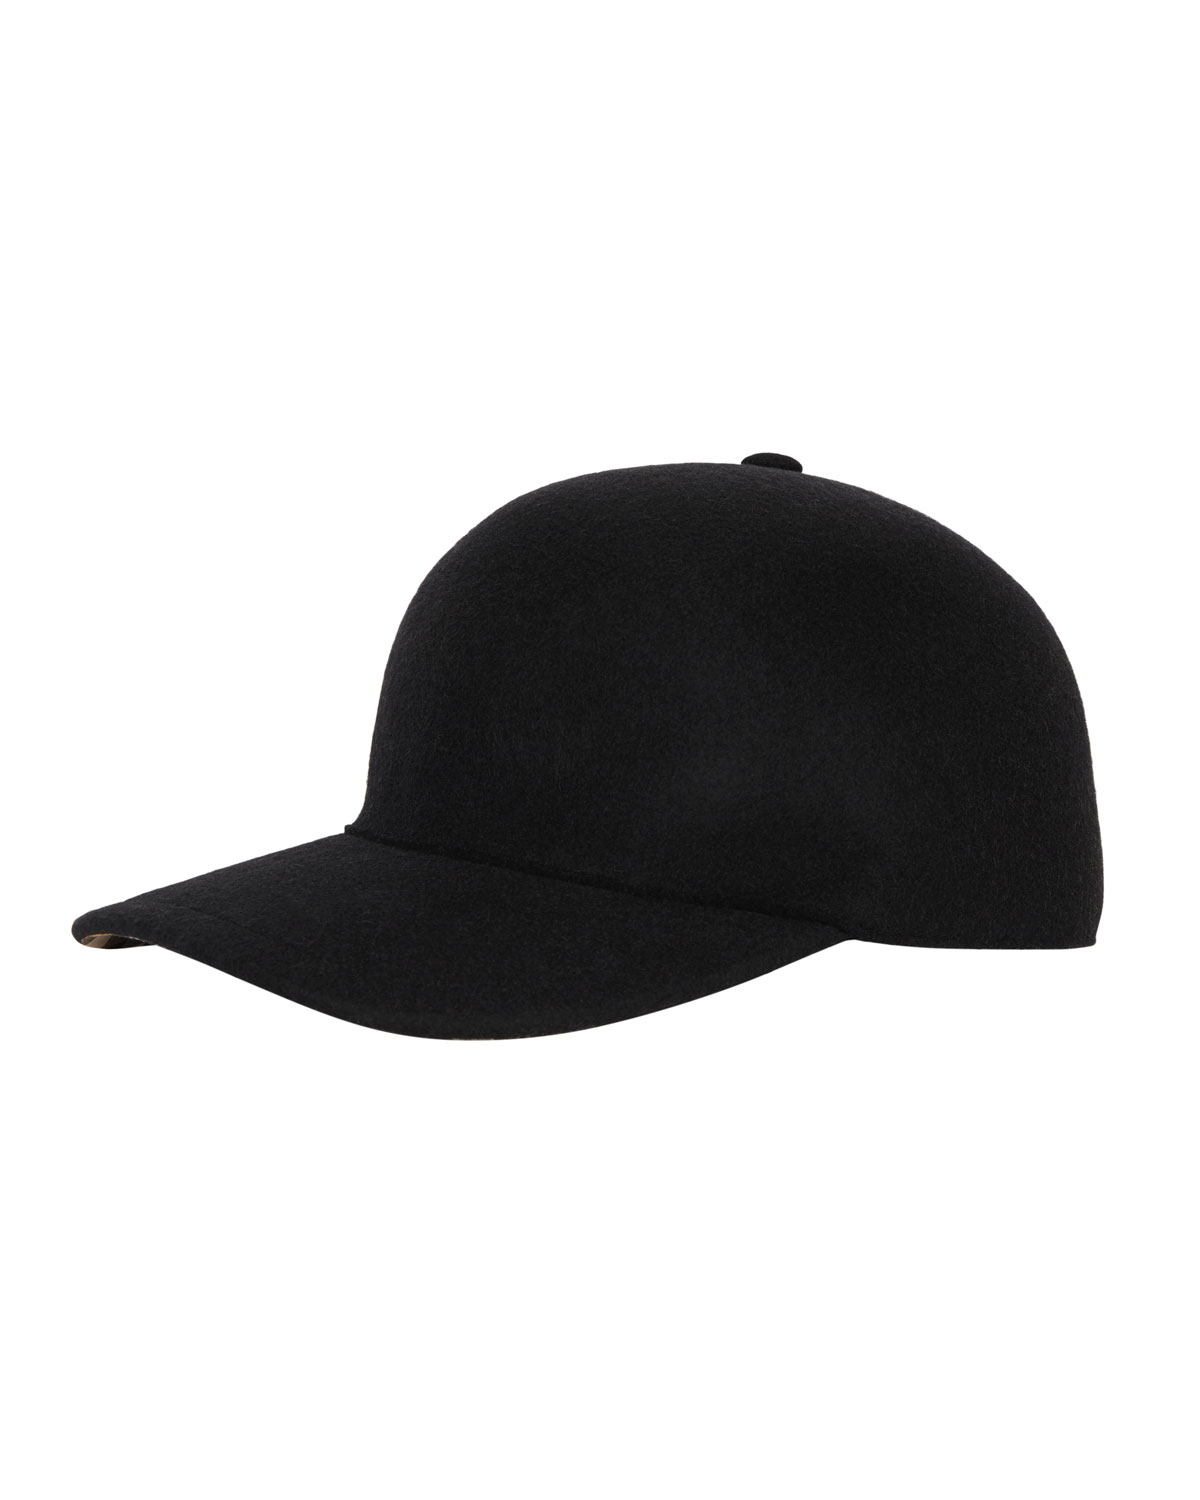 984598d57 Men's Molded Wool Baseball Cap